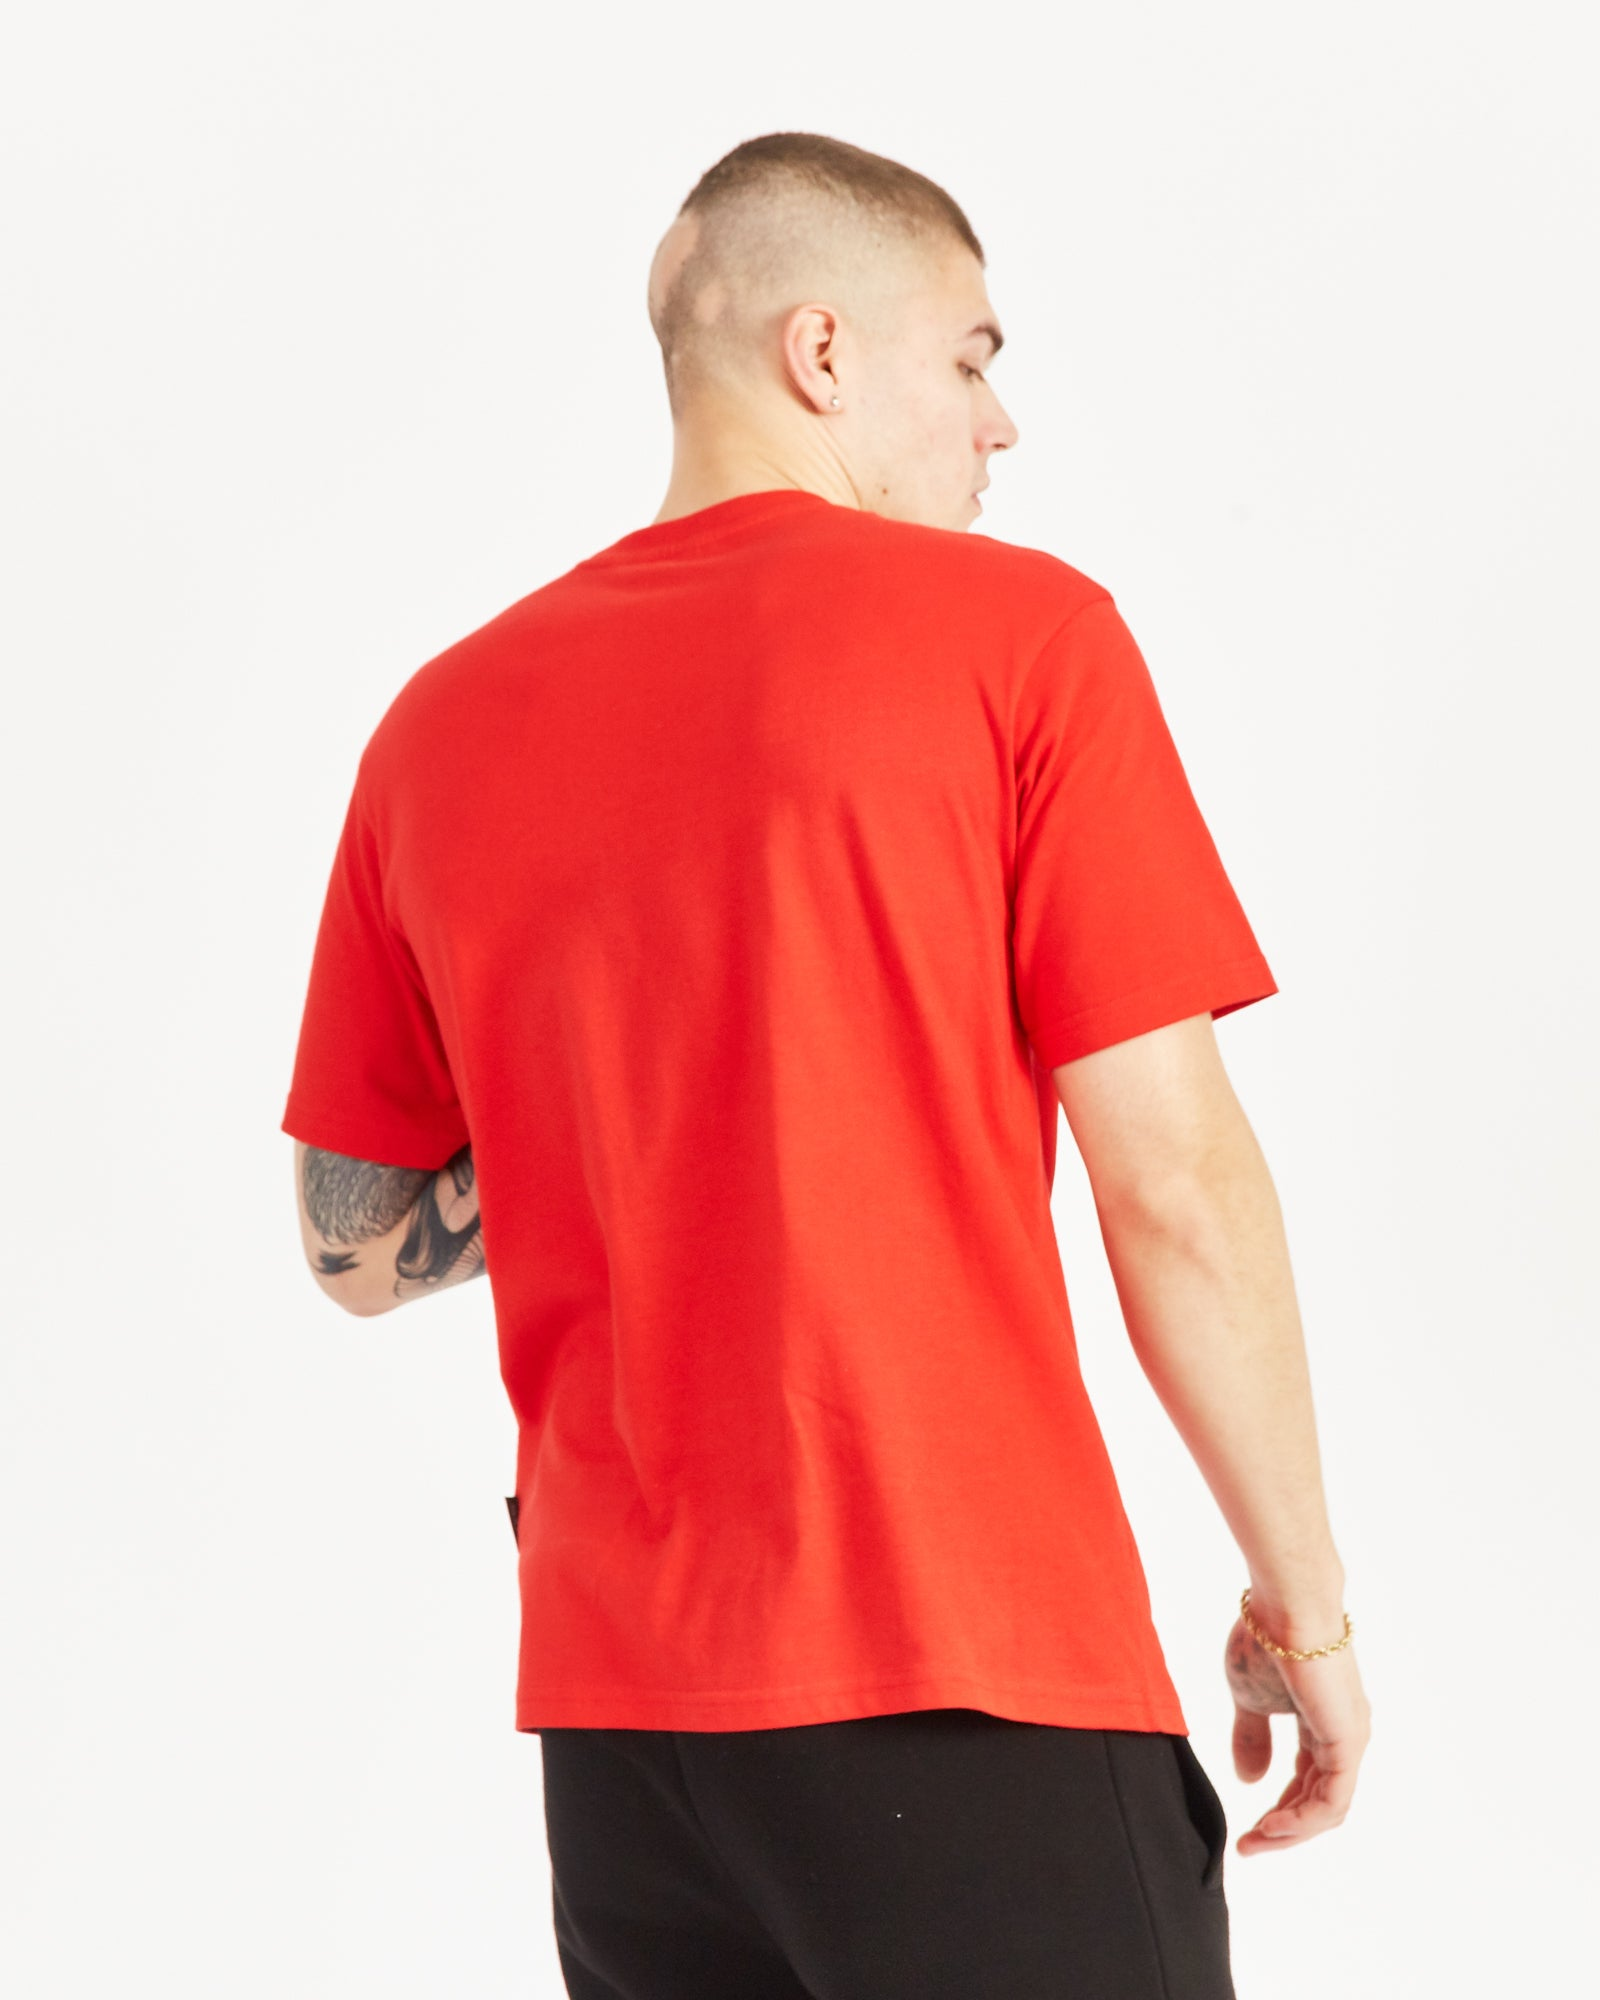 OG Core T-Shirt - Red/White